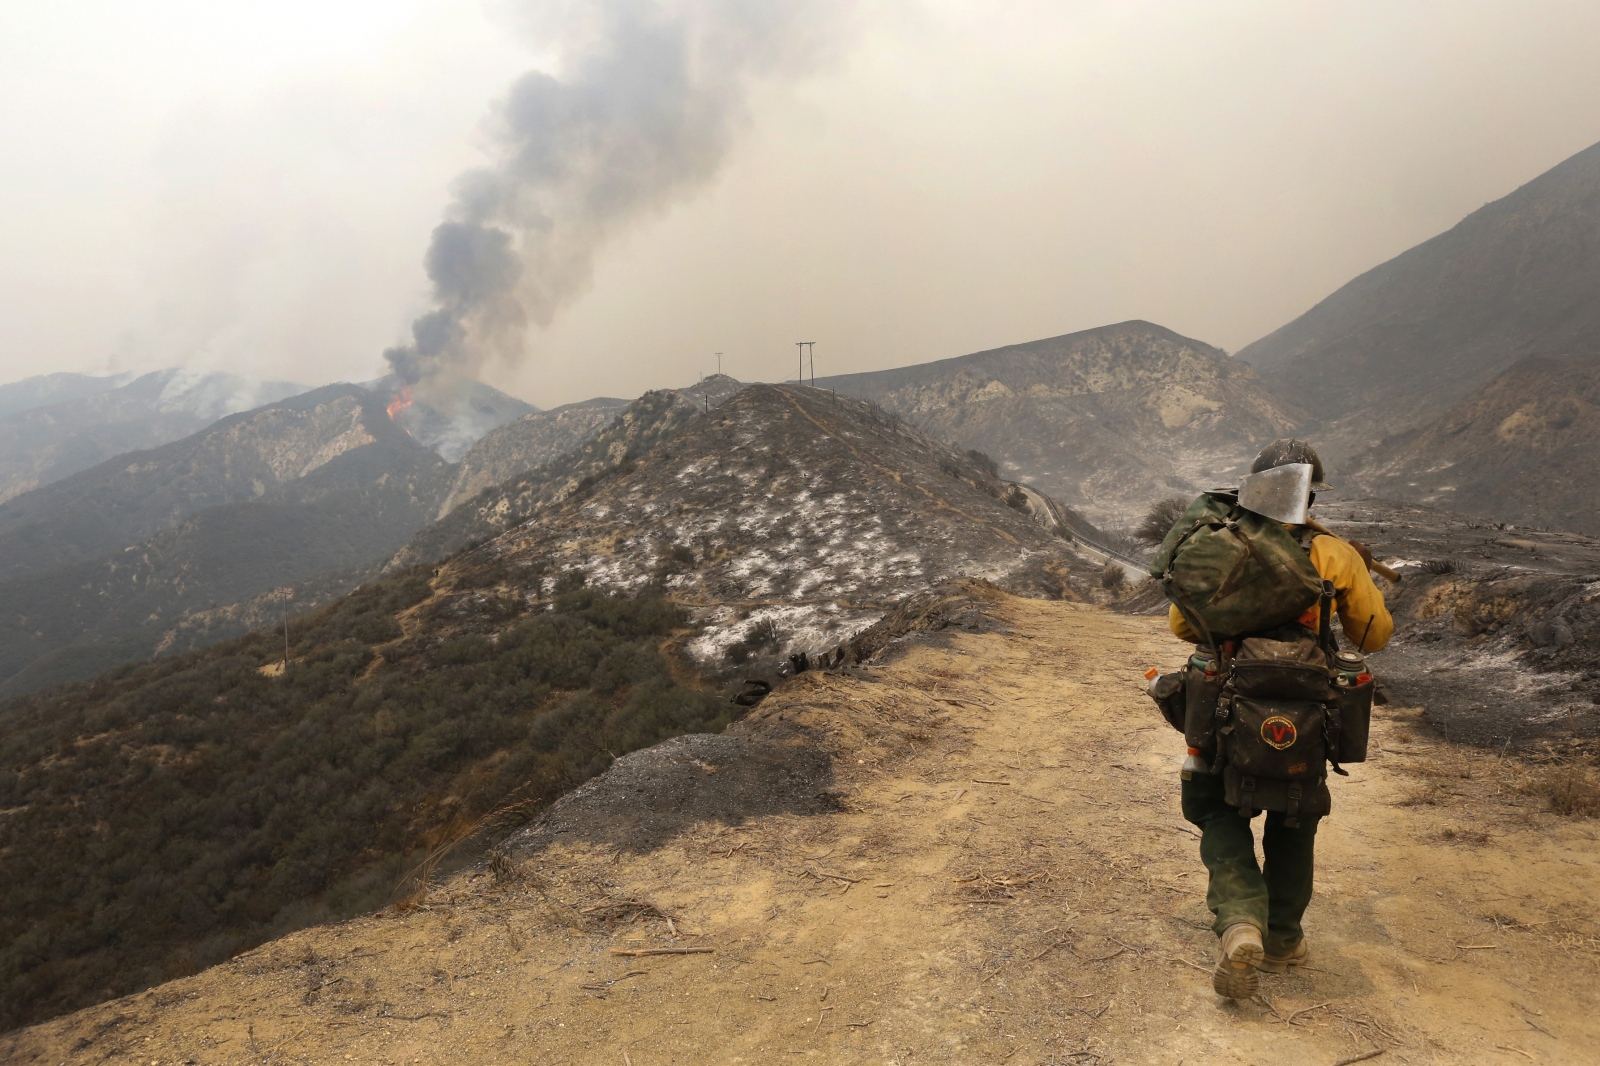 Angeles National Forest firefighter Simeon Hagens walks along a trail already burned by the Sand Fire near Wildlife Waystation on Little Tujunga Canyon Road on Saturday, July 23, 2016. Katharine Lotze/The Signal